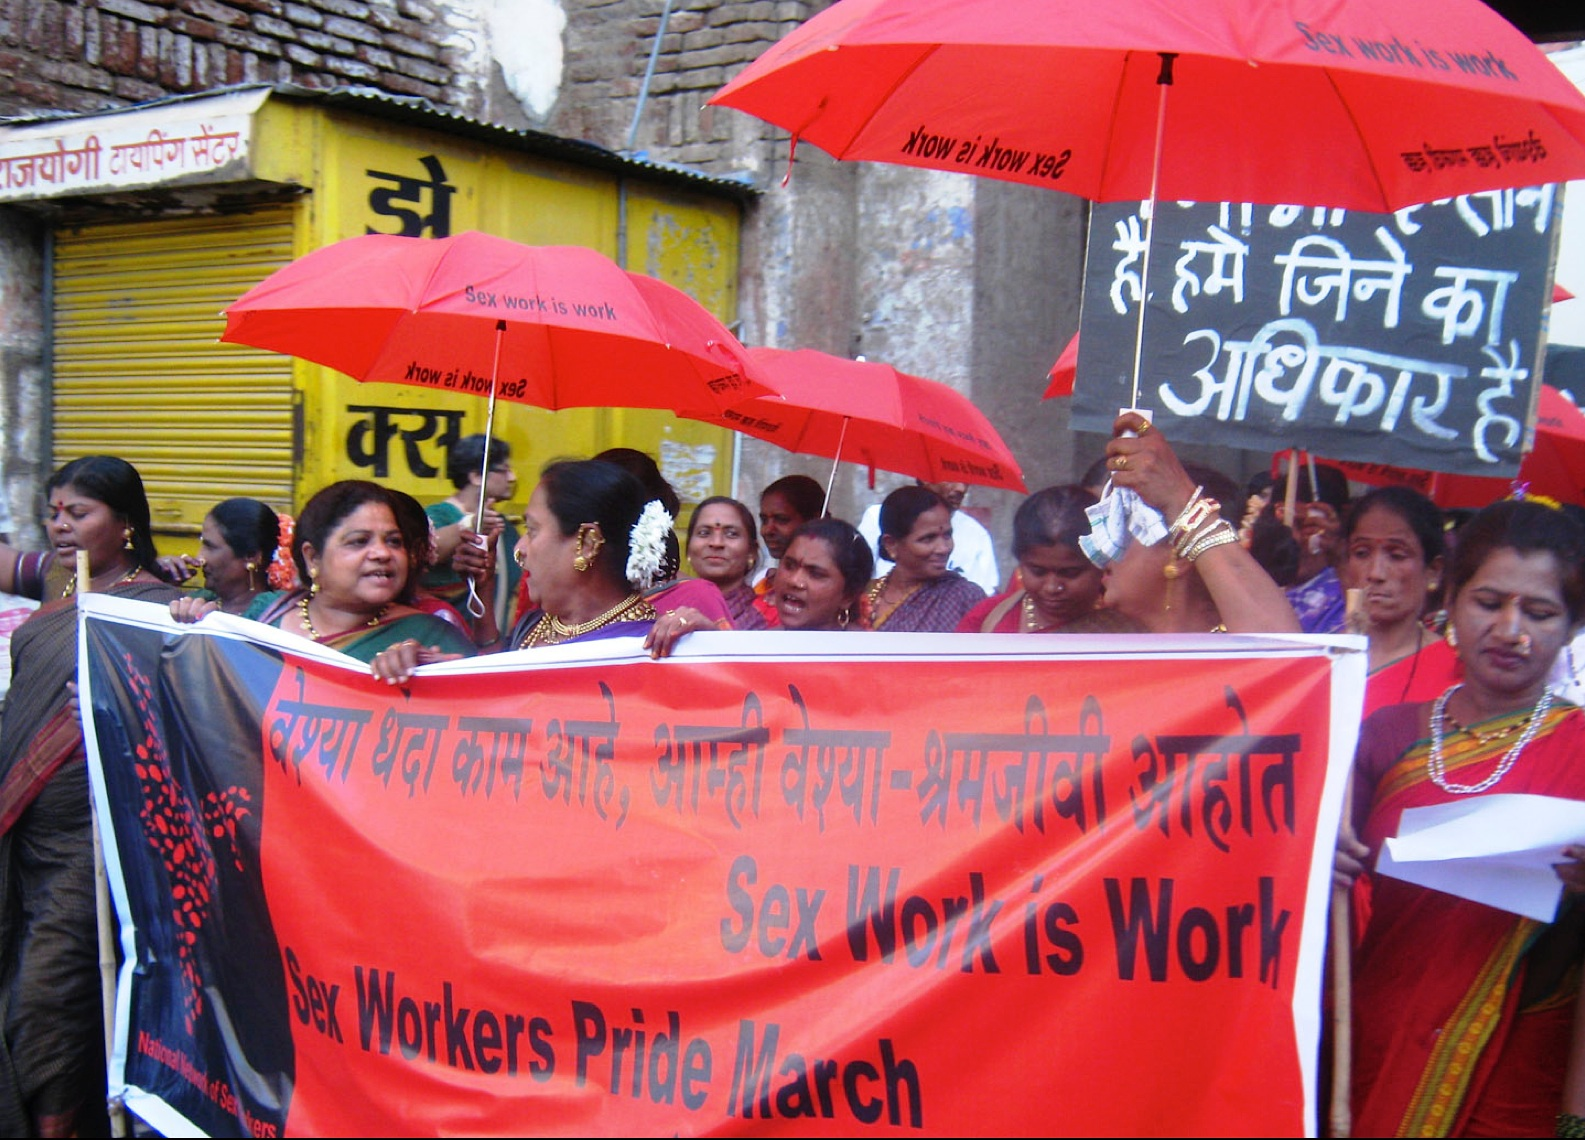 sex workers in India march through the street carrying red umbrellas saying